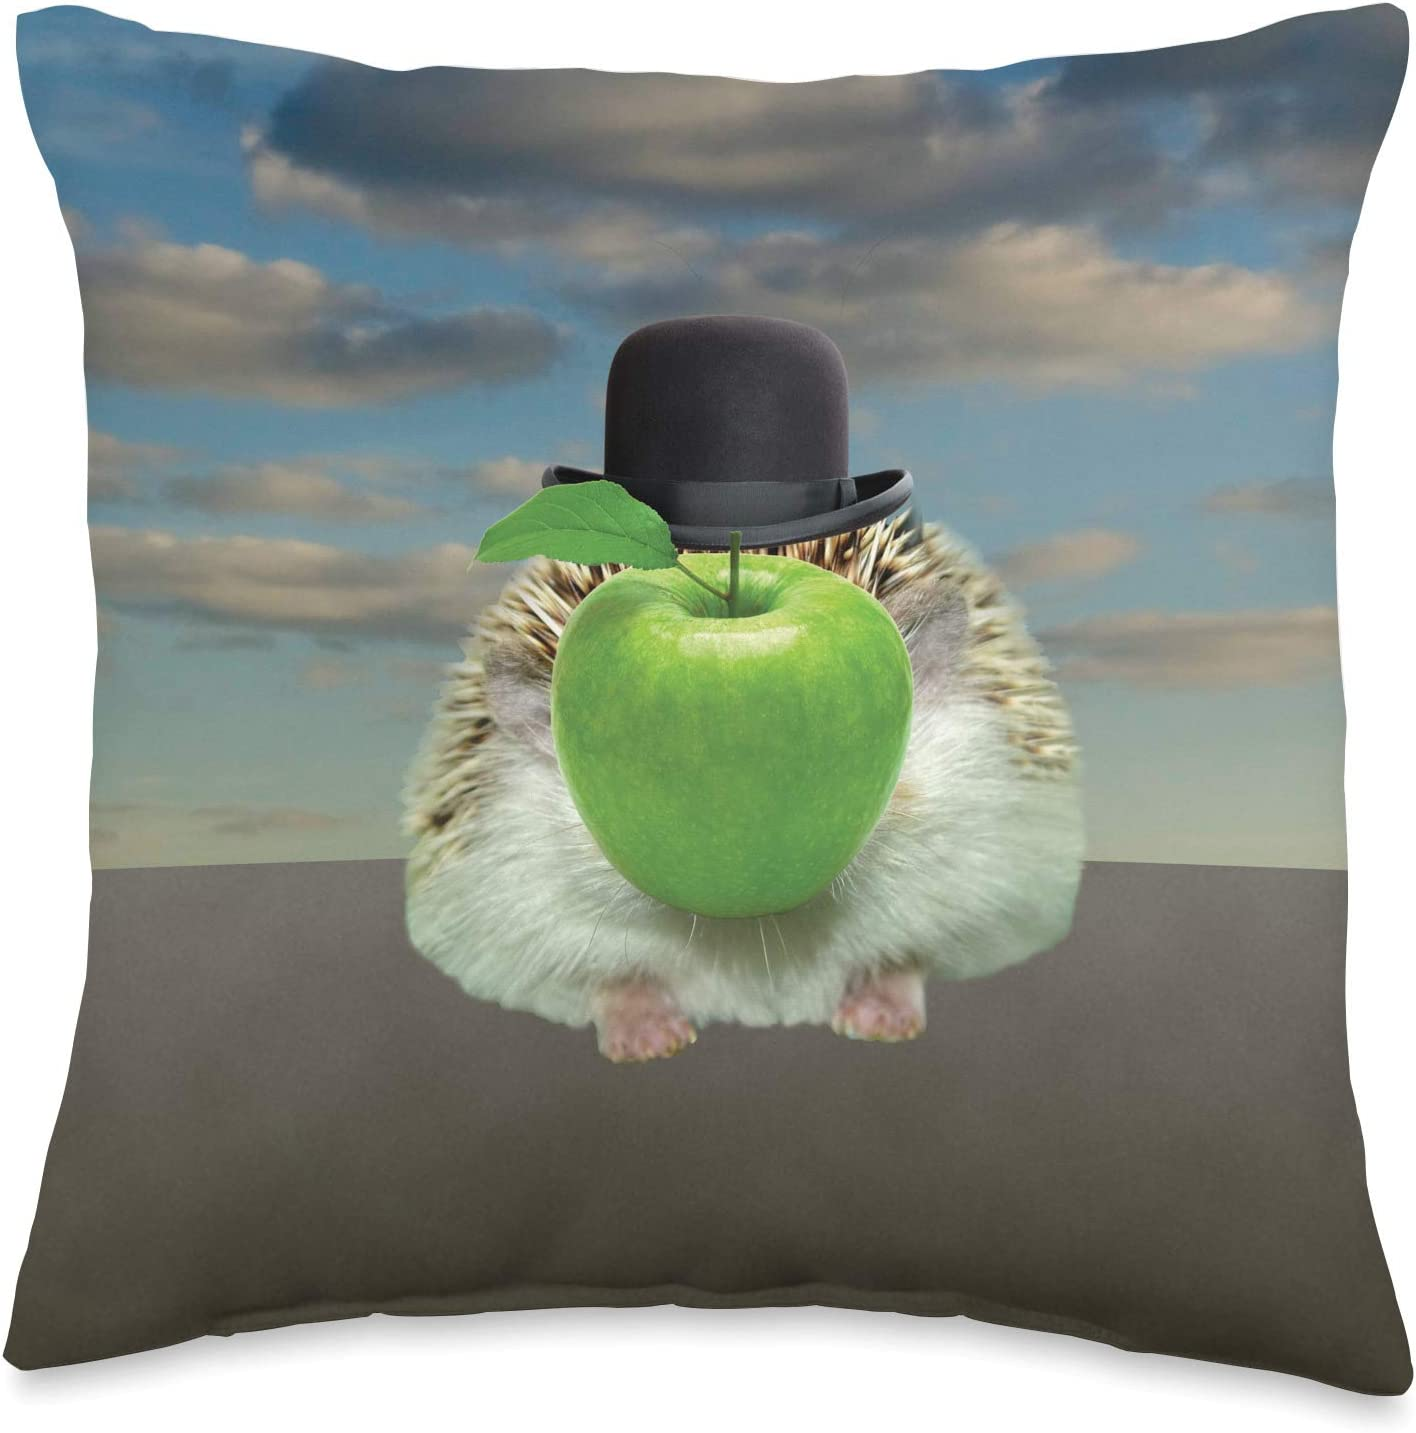 Urchin Wear Hedgehog Magritte The Apple Throw Pillow, 16x16, Multicolor